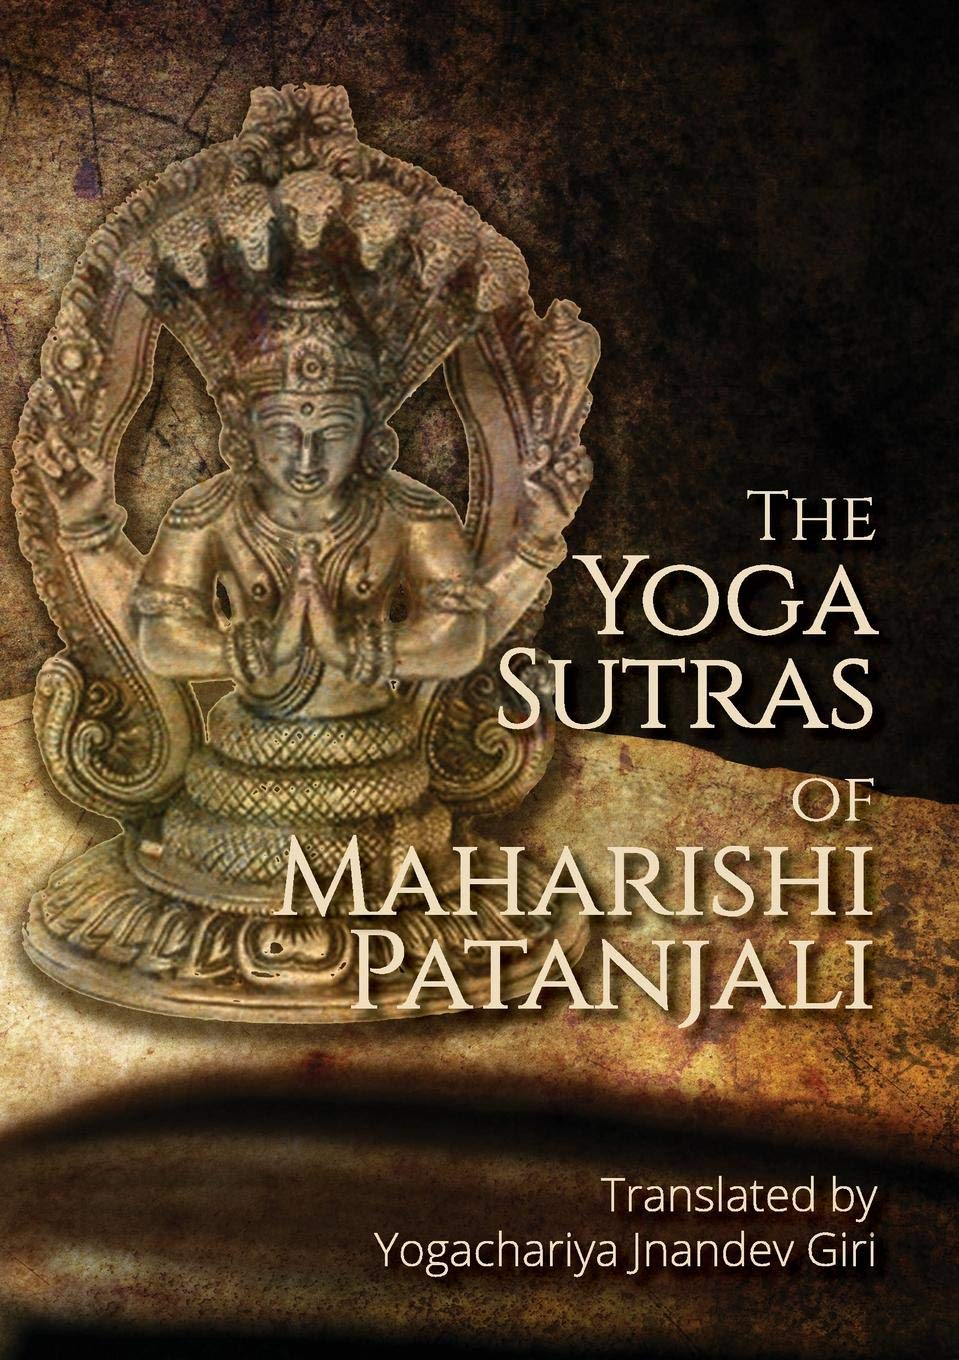 The Yoga Sutras of Maharishi Patanjali: Simple contemplative ...